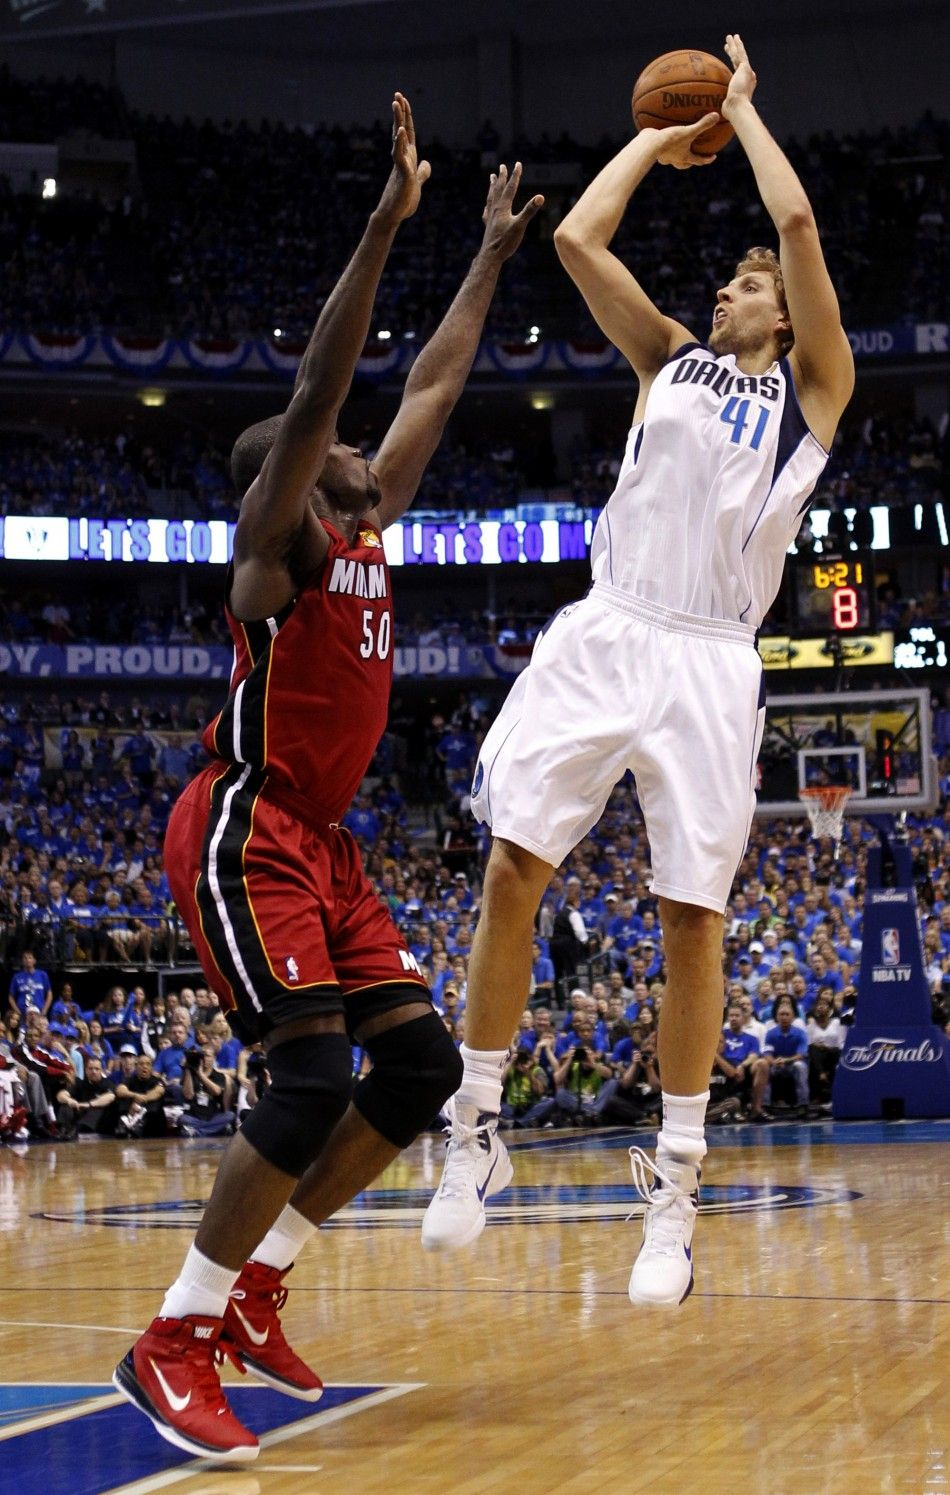 Nba Finals Game 3 Heat Sneak In Win Over Mavericks Photos Nba Finals Game Nba Finals Nba